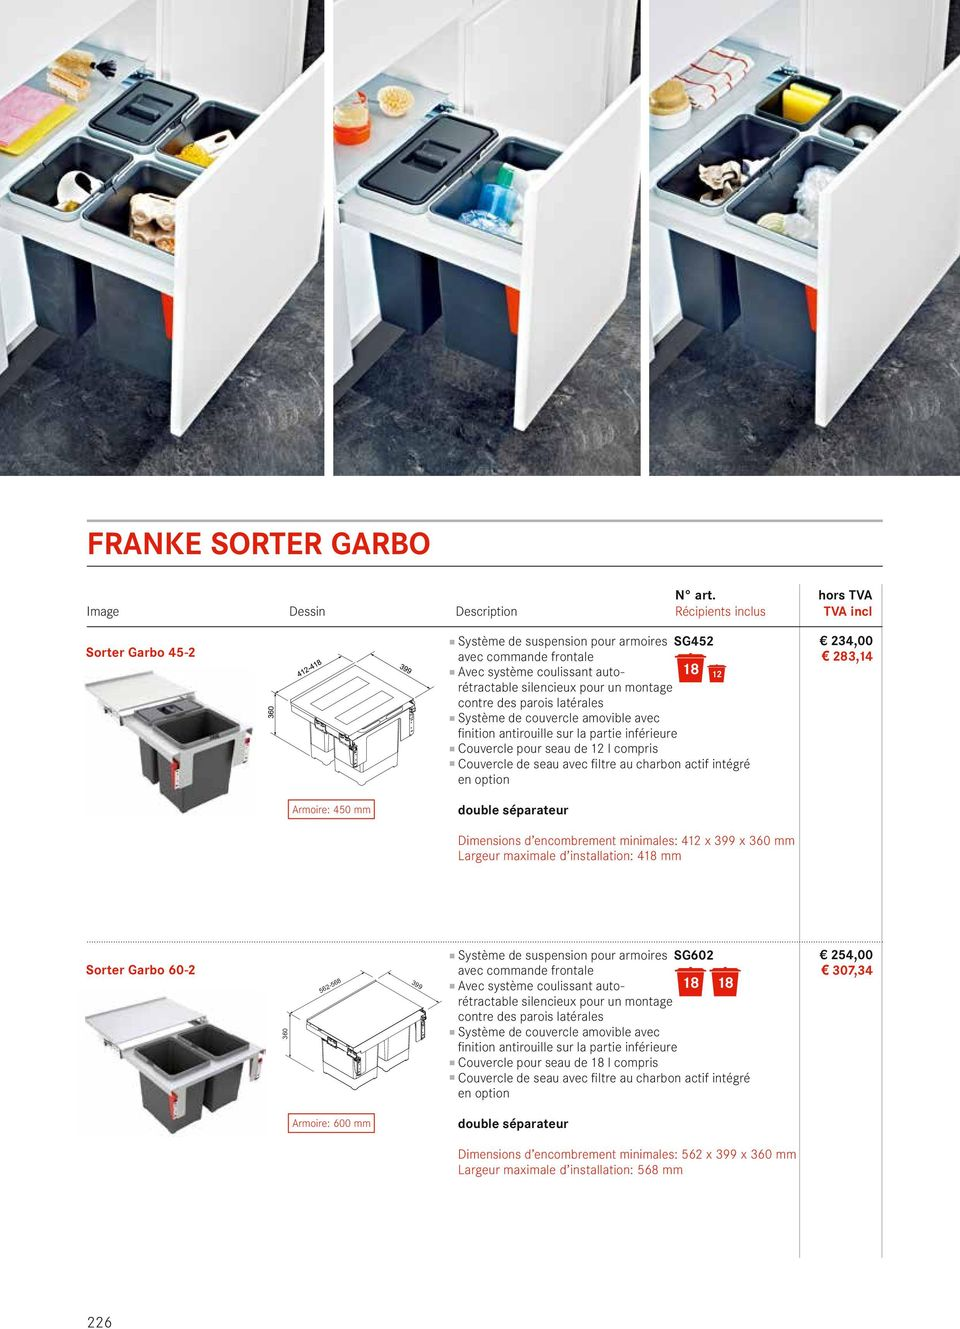 option 234,00 23,14 Armoire: 450 mm Dimensions d encombrement minimales: 412 x 399 x 360 mm Largeur maximale d installation: 4 mm Sorter Garbo 60-2 360 562-56 399 Système de suspension pour armoires